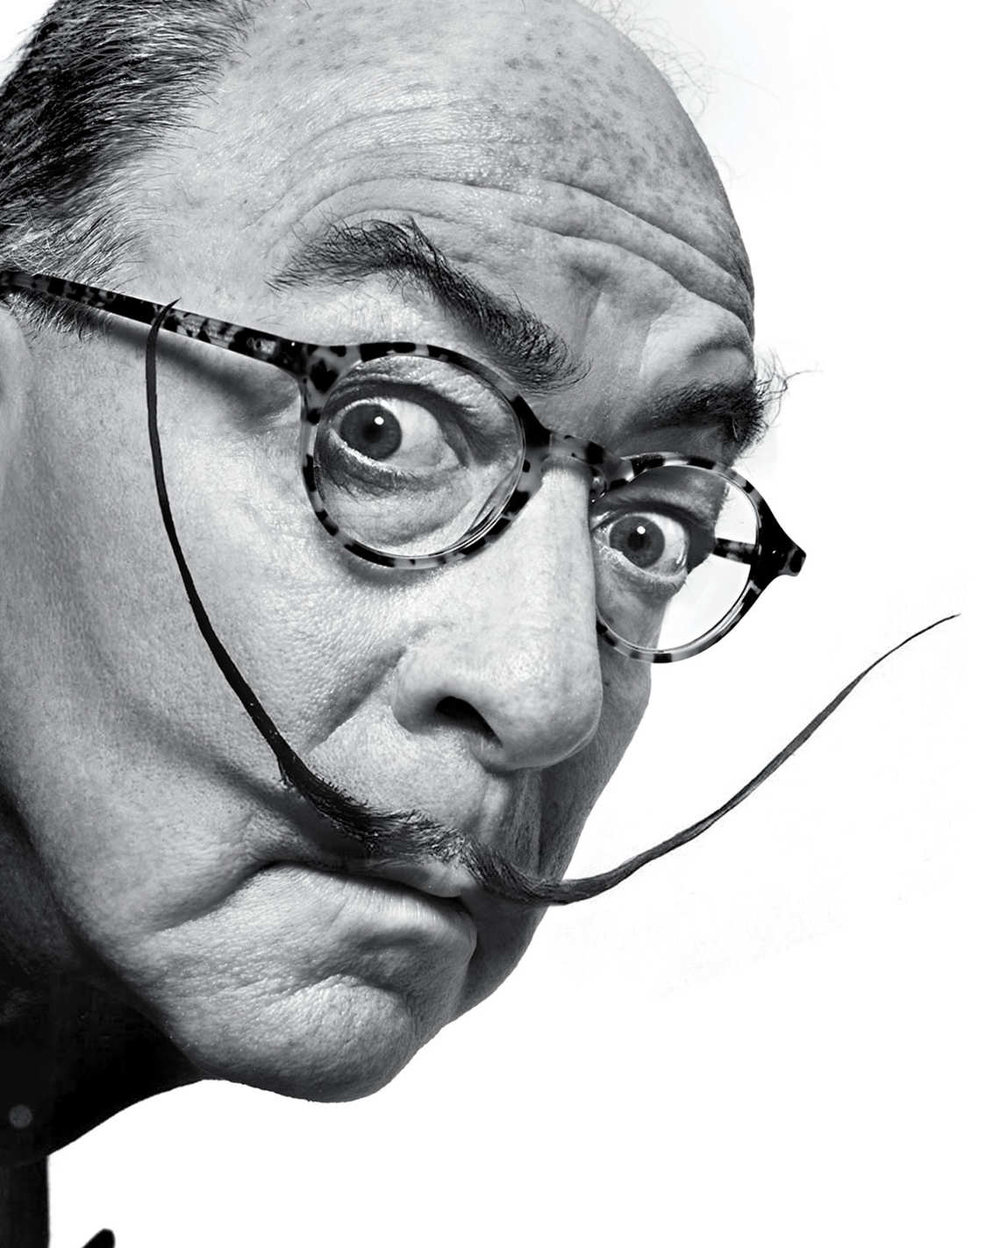 Jerry Saltz,  New York 's art critic, as Salvador Dalí, based on a photograph by Philippe Halsman. Photo: Photo by Marvin Orellana. Photo Illustration by Joe Darrow